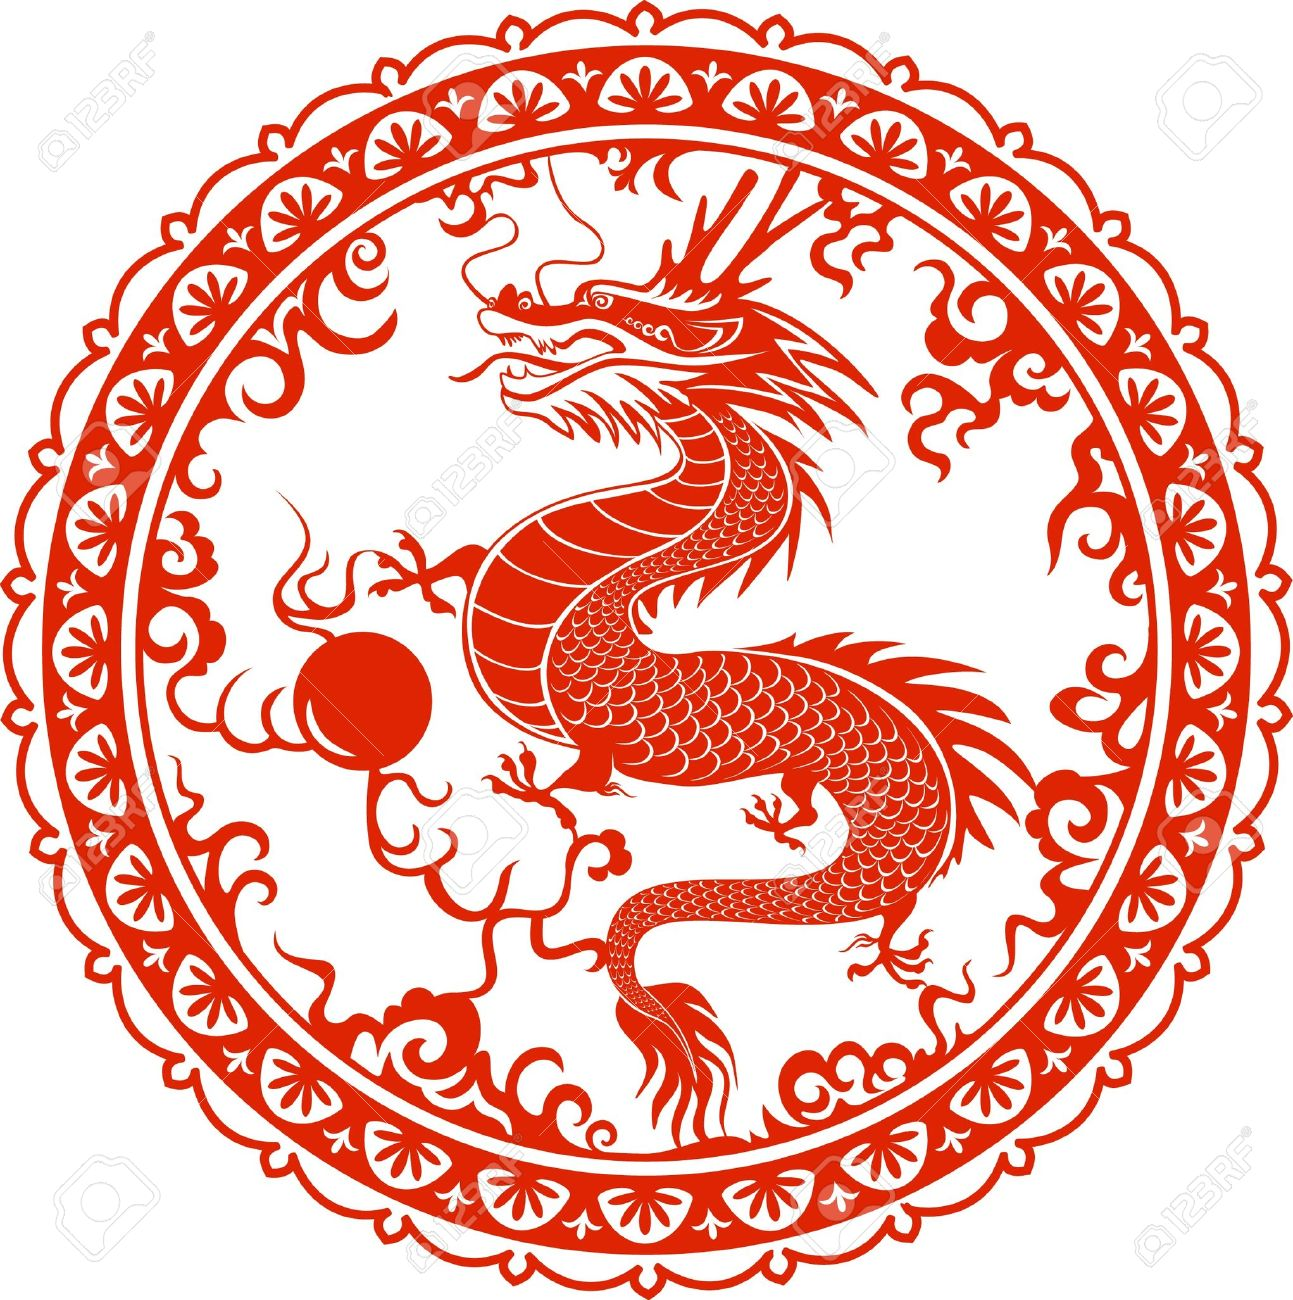 Dragon For The Year 2012 Traditional Chinese Goroscop Symbol